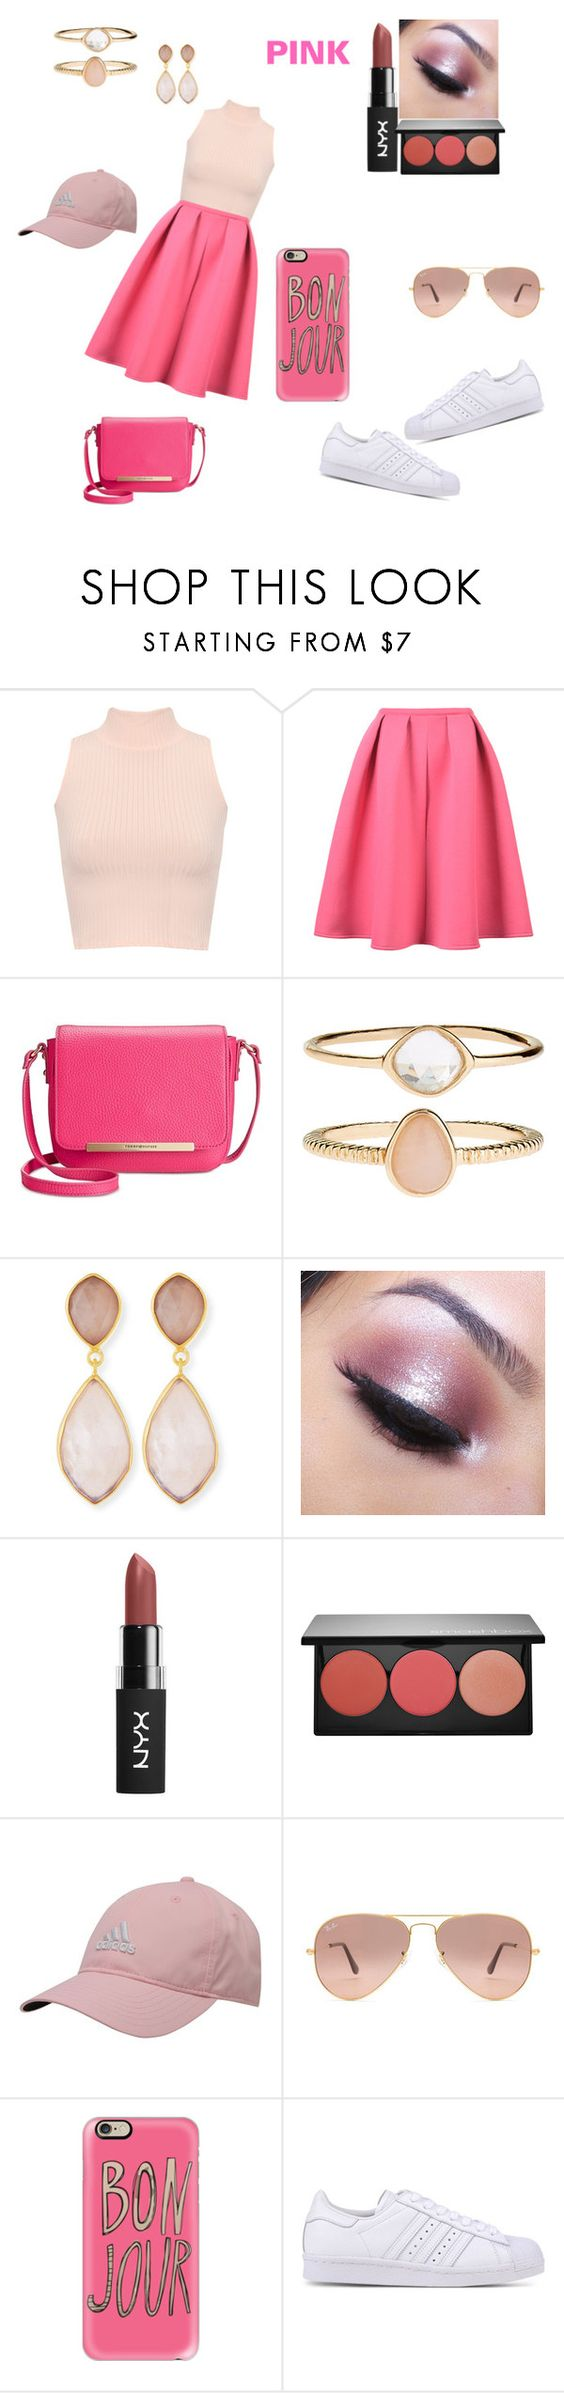 Pink by niaoffcal on Polyvore featuring WearAll, adidas Originals, Tommy Hilfiger, Accessorize, Dina Mackney, Casetify, adidas, Ray-Ban, Too Faced Cosmetics and Smashbox